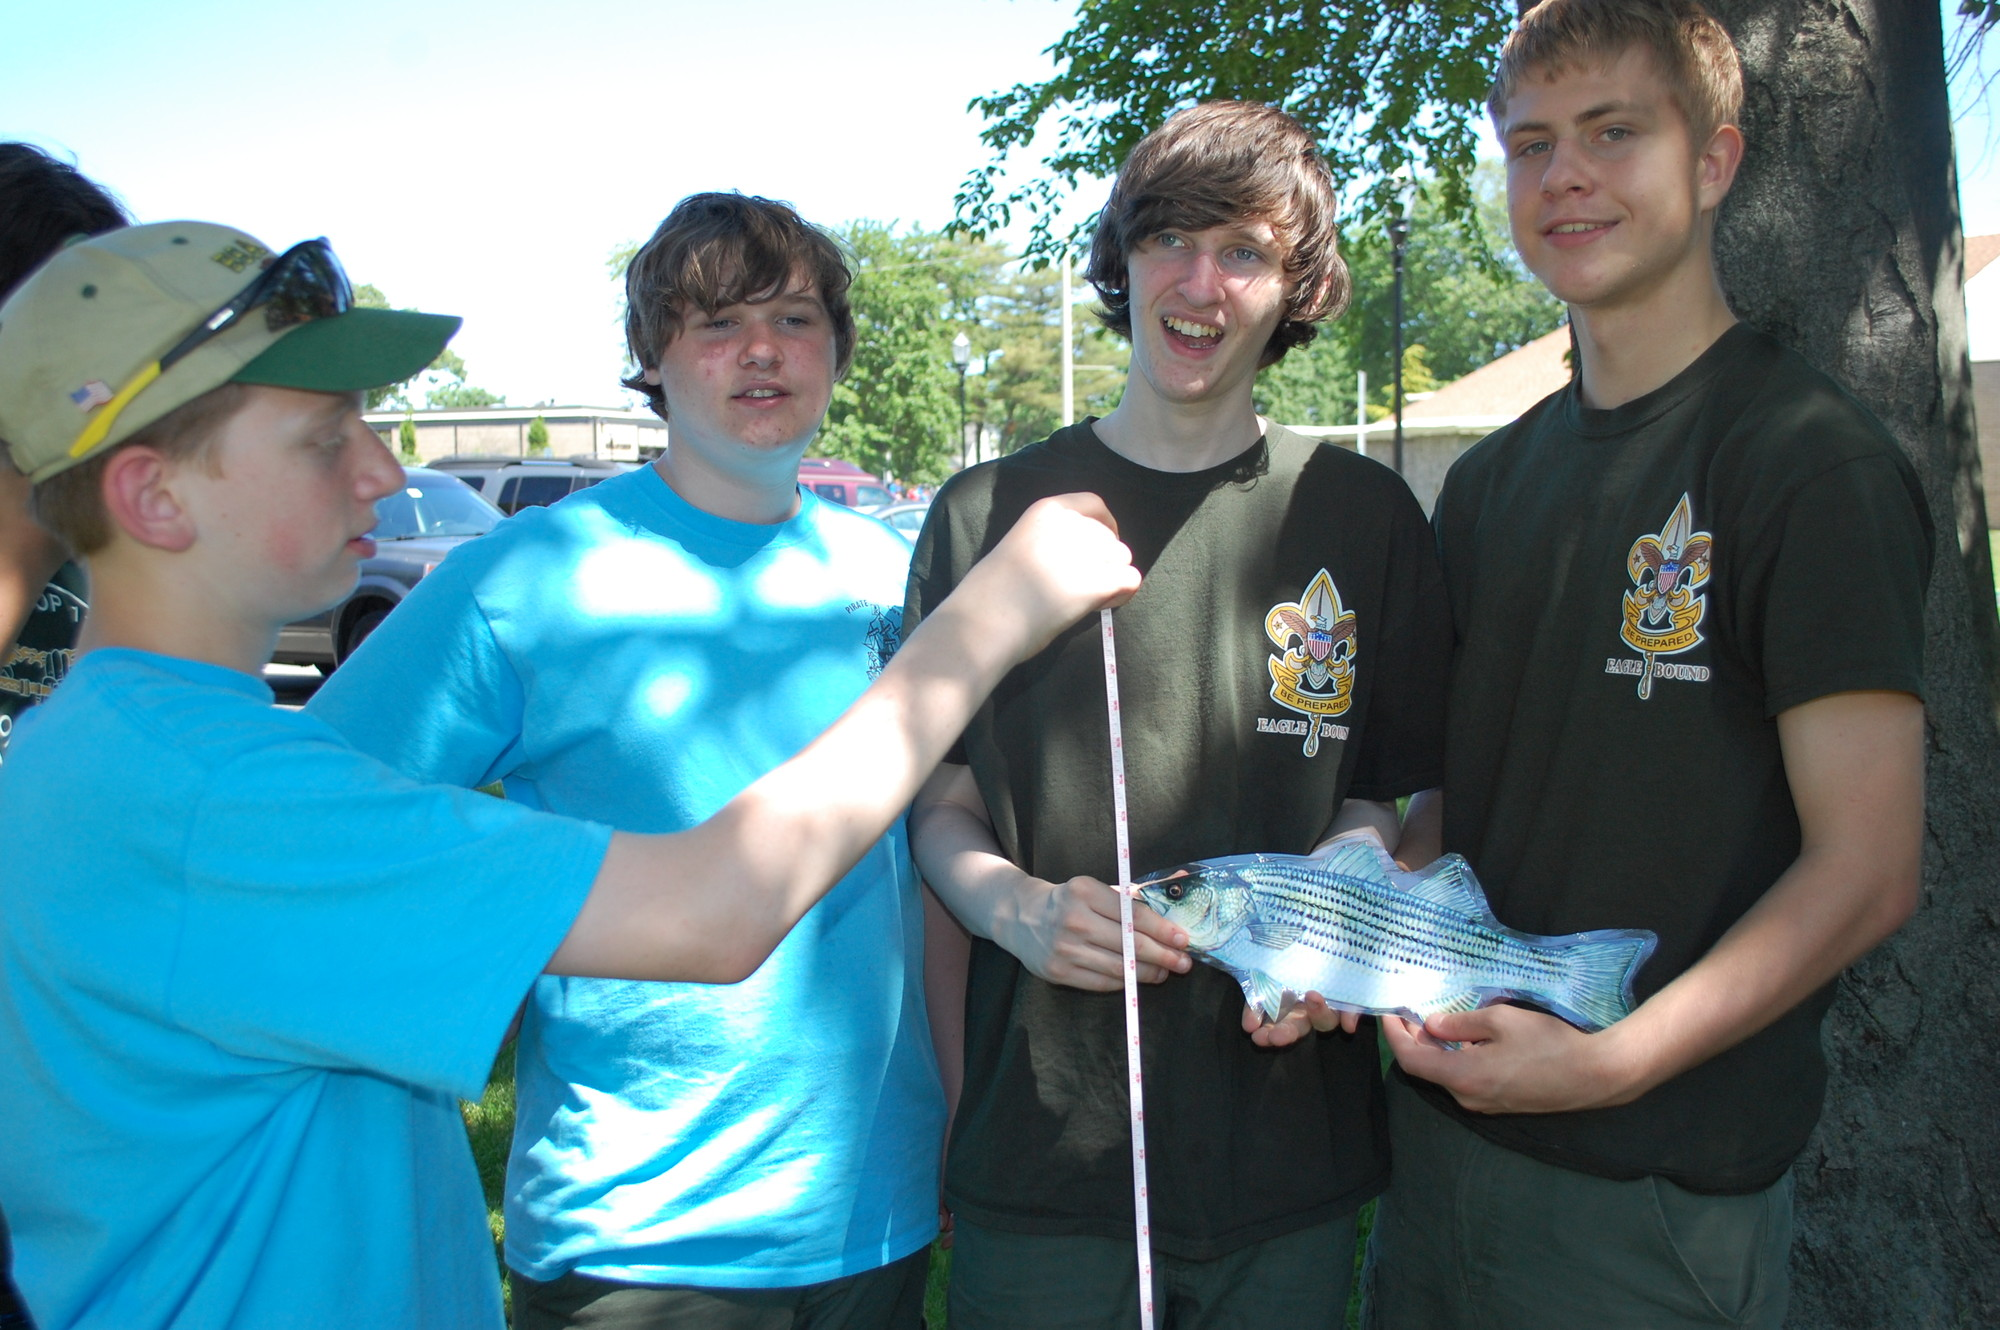 Troop 116 Boy Scouts, from left, Jason Bitteto, Chris Raffloer, Billy Raffloer and Ryan Plackis learned about fish.